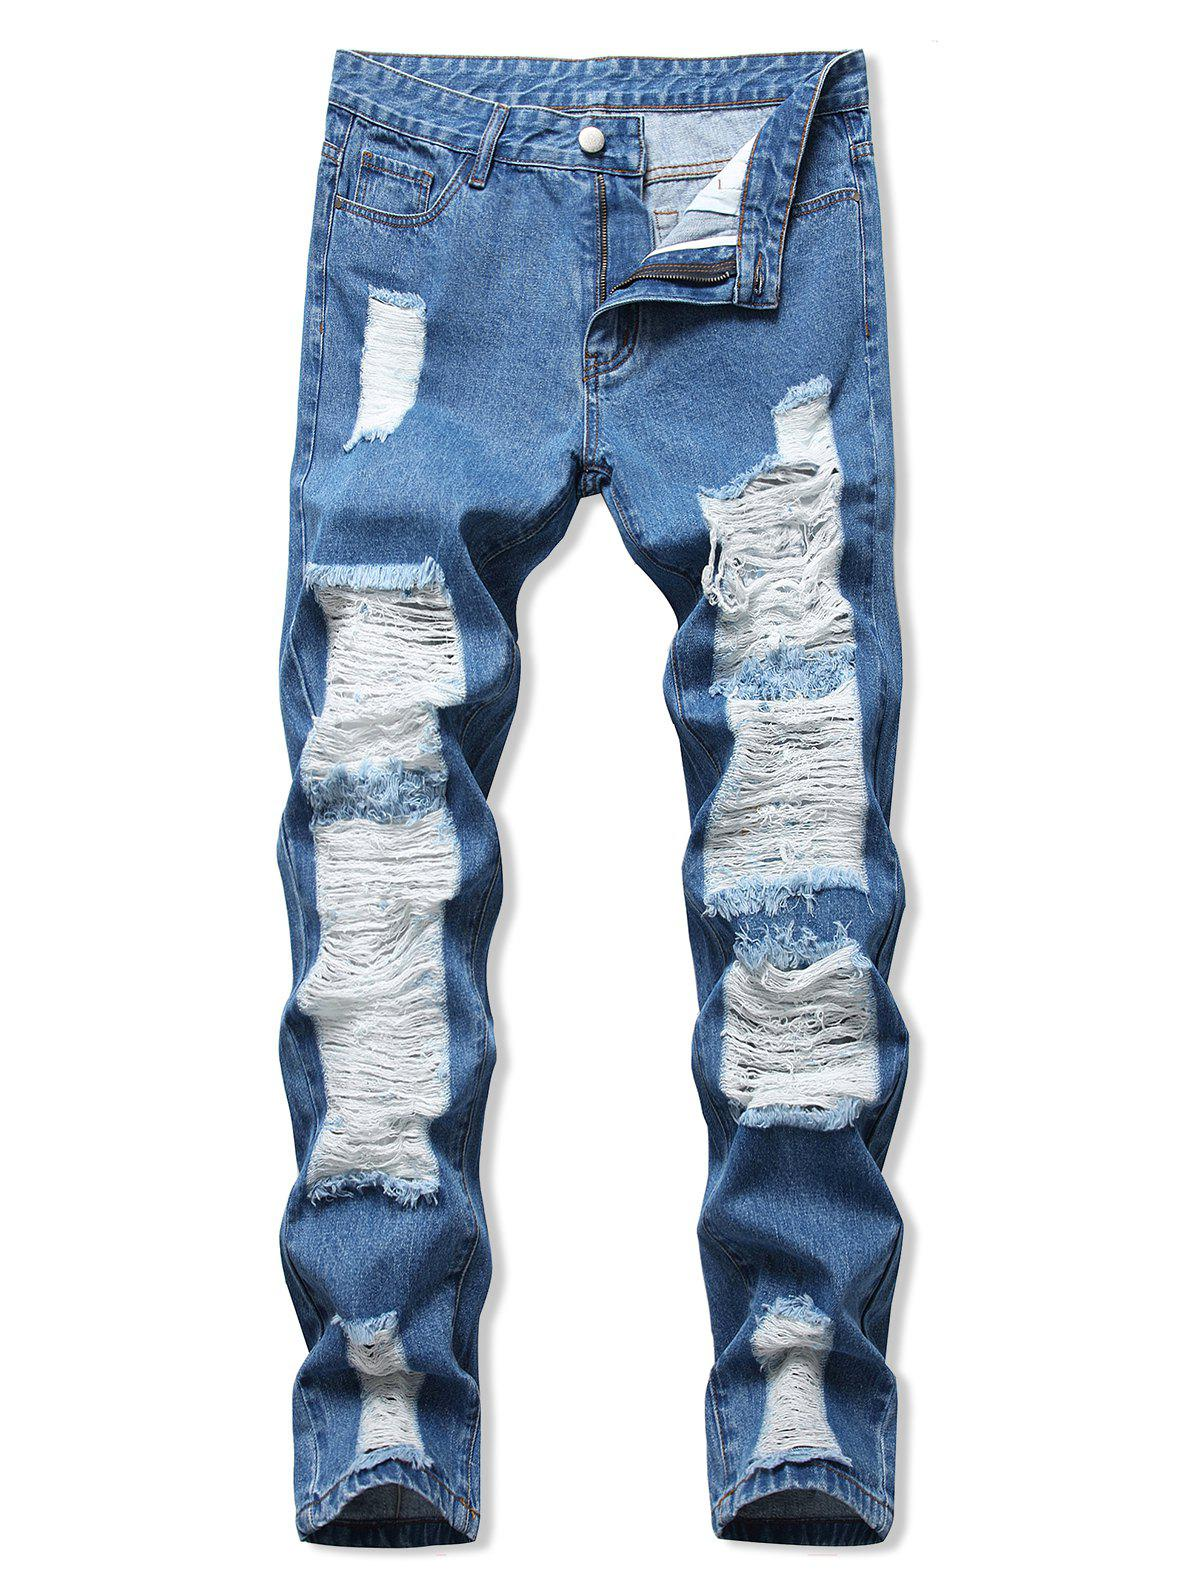 Ladder Distressed Zipper Fly Straight Leg Jeans - BLUE 40